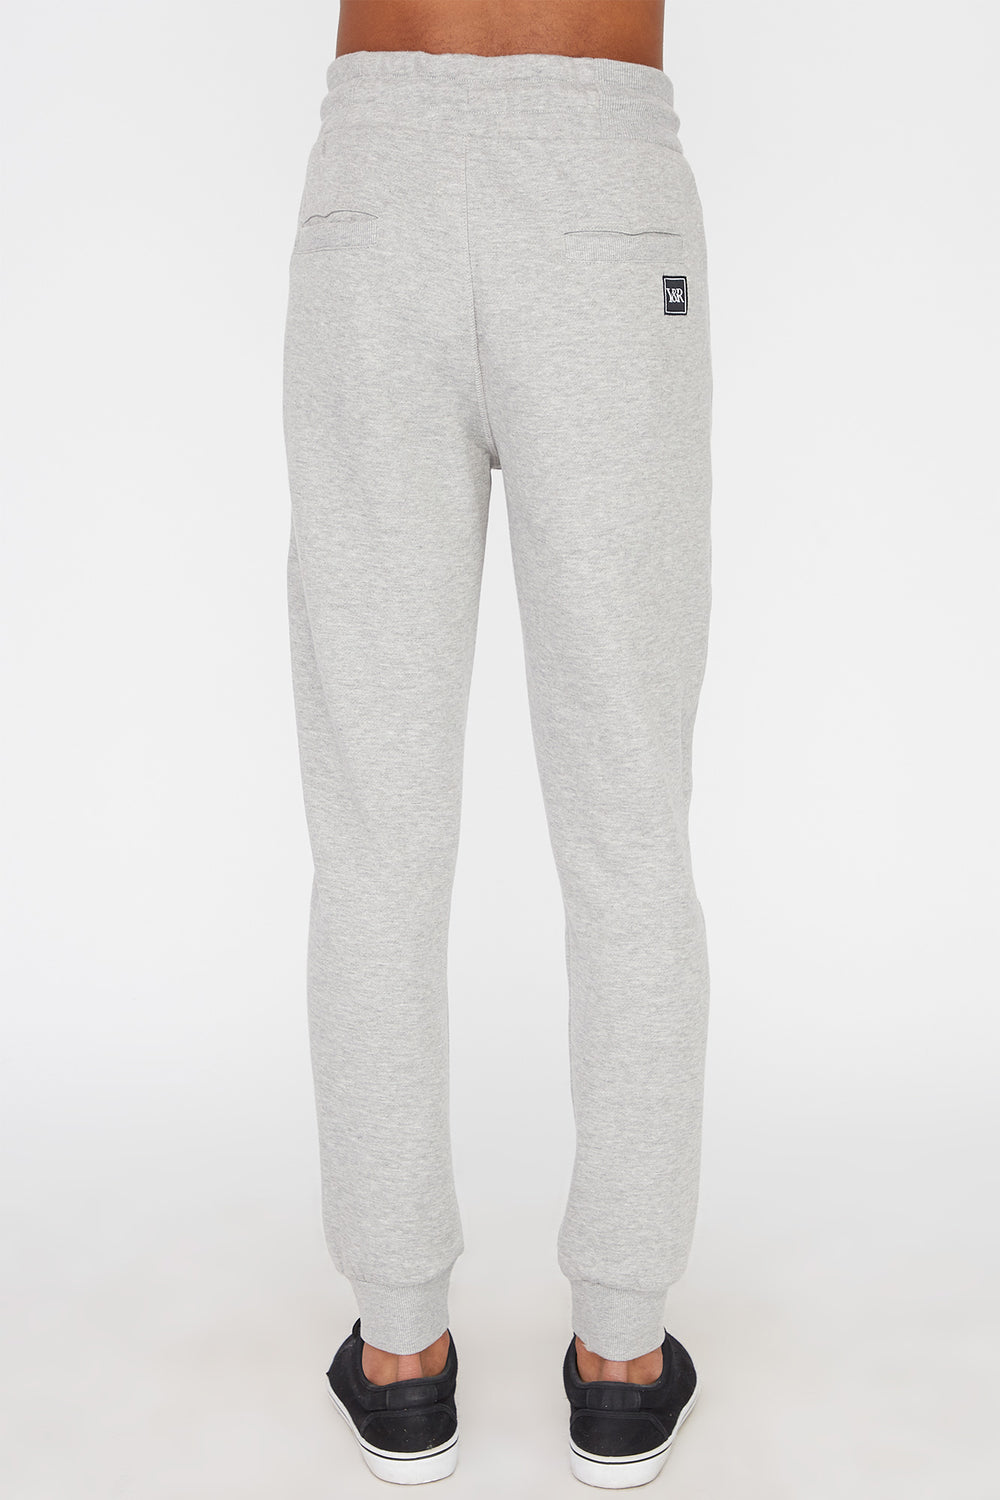 Joggers Avec Accents Fluo Young & Reckless Homme Gris